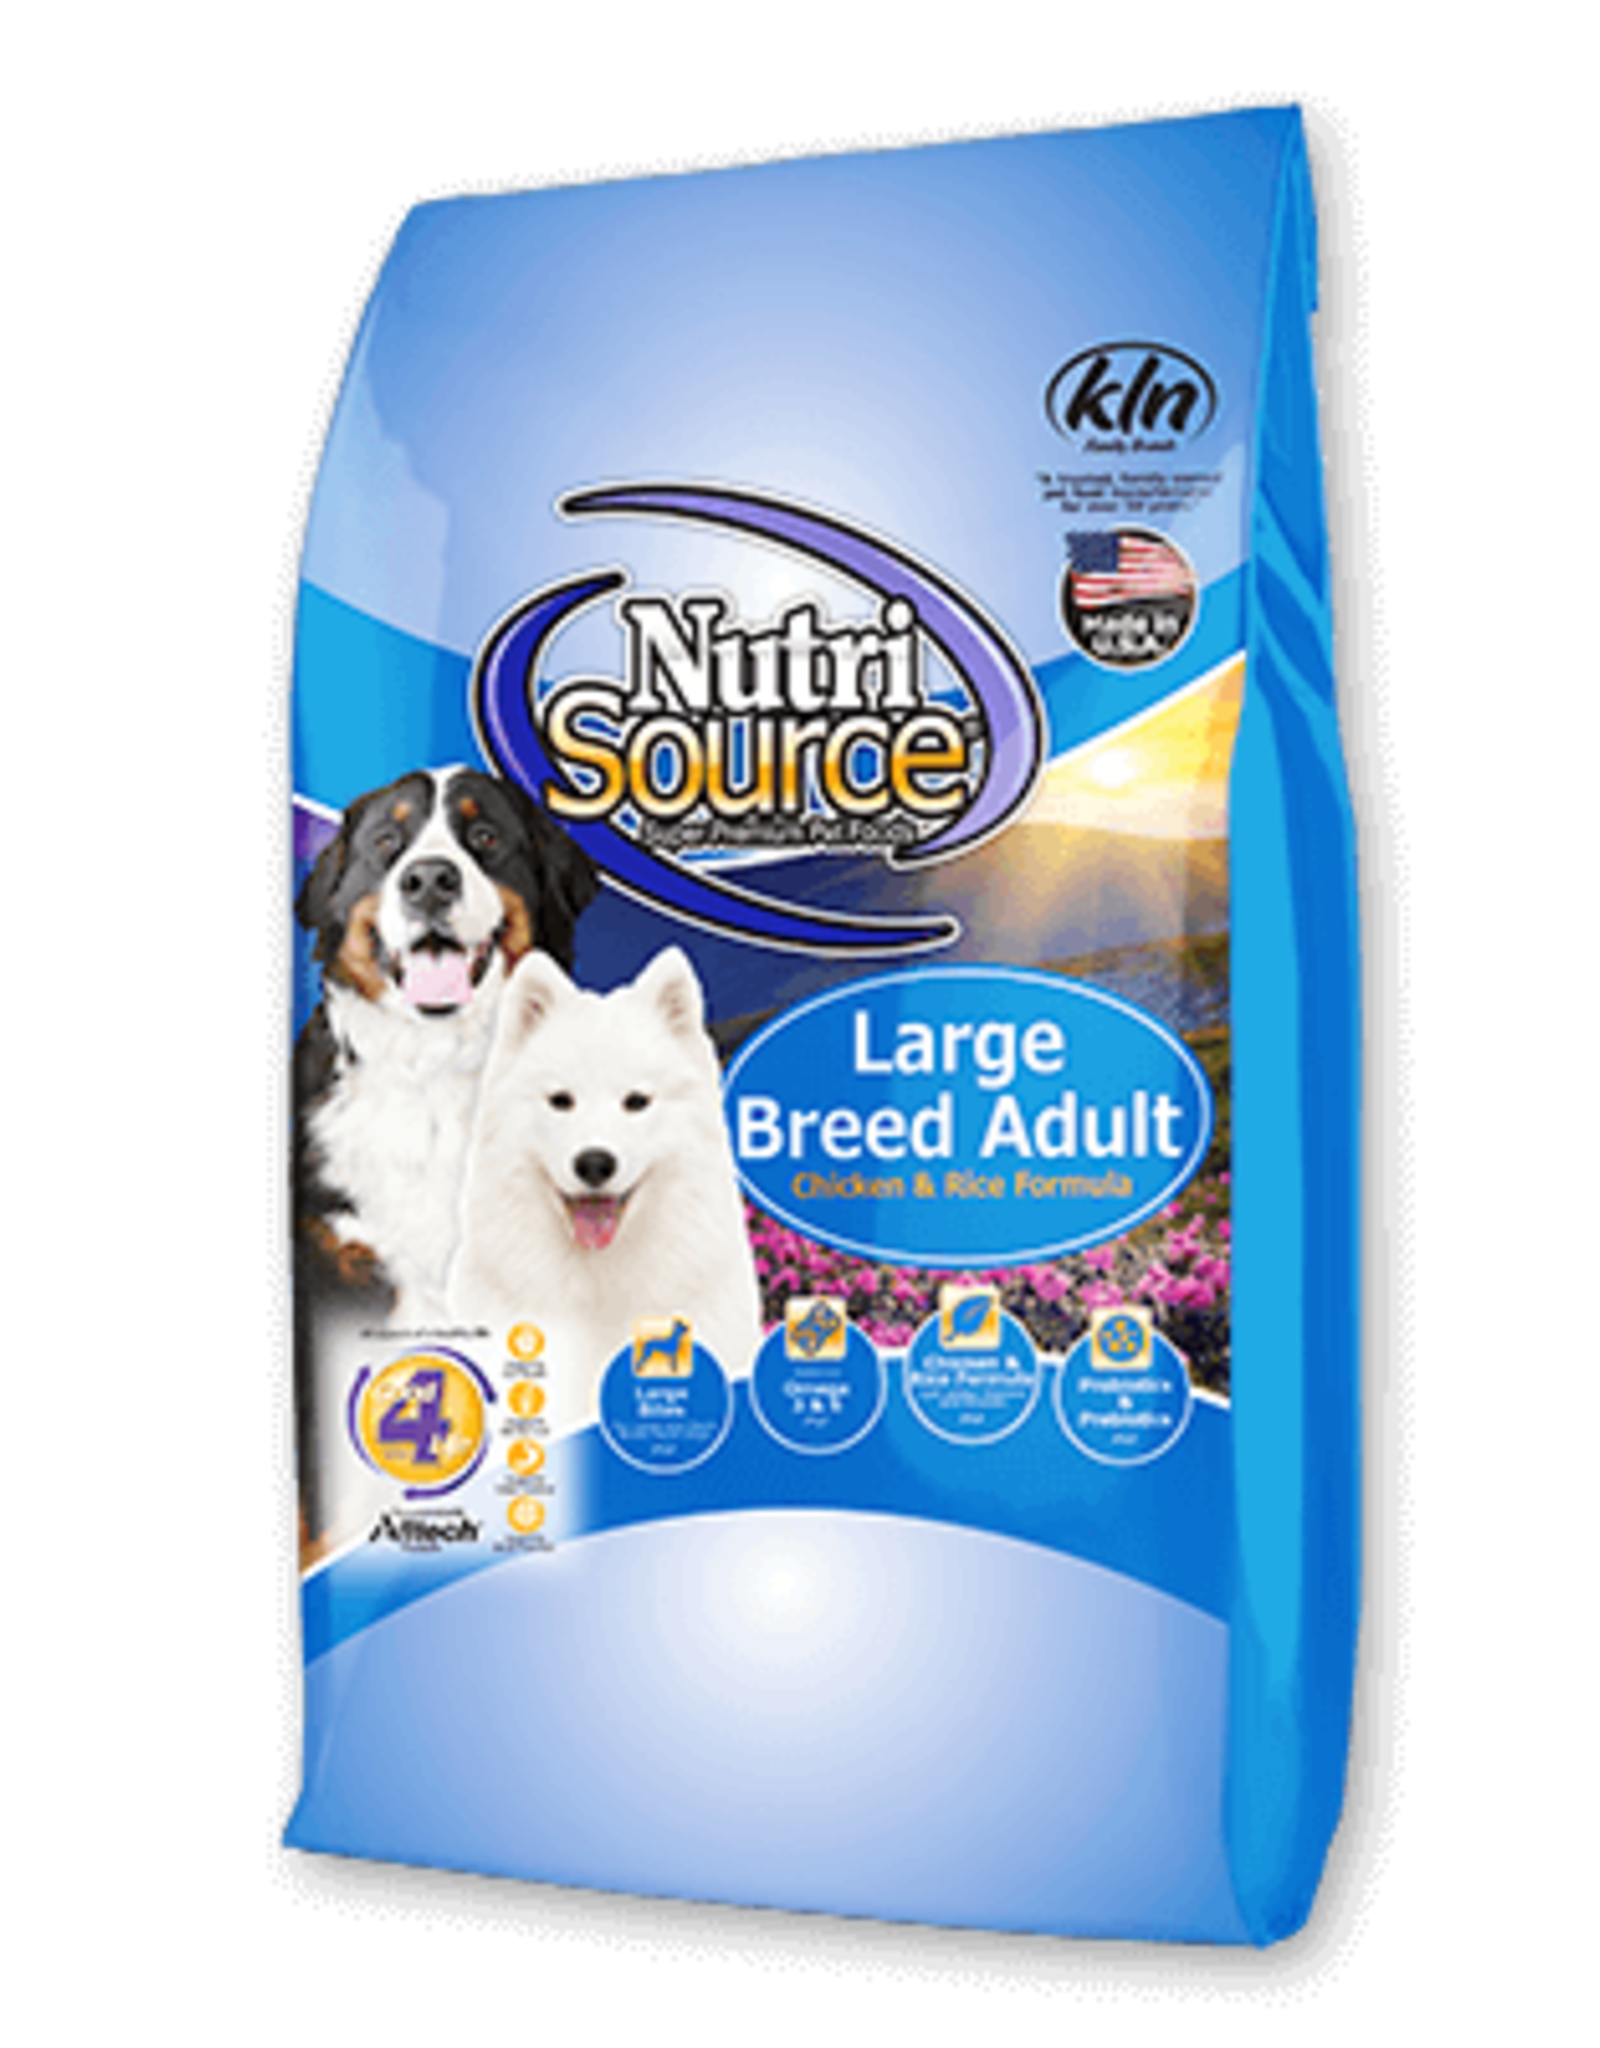 NutriSource NutriSource Dog Dry Large Breed Adult Chicken & Rice Formula Grain Inclusive 30lb